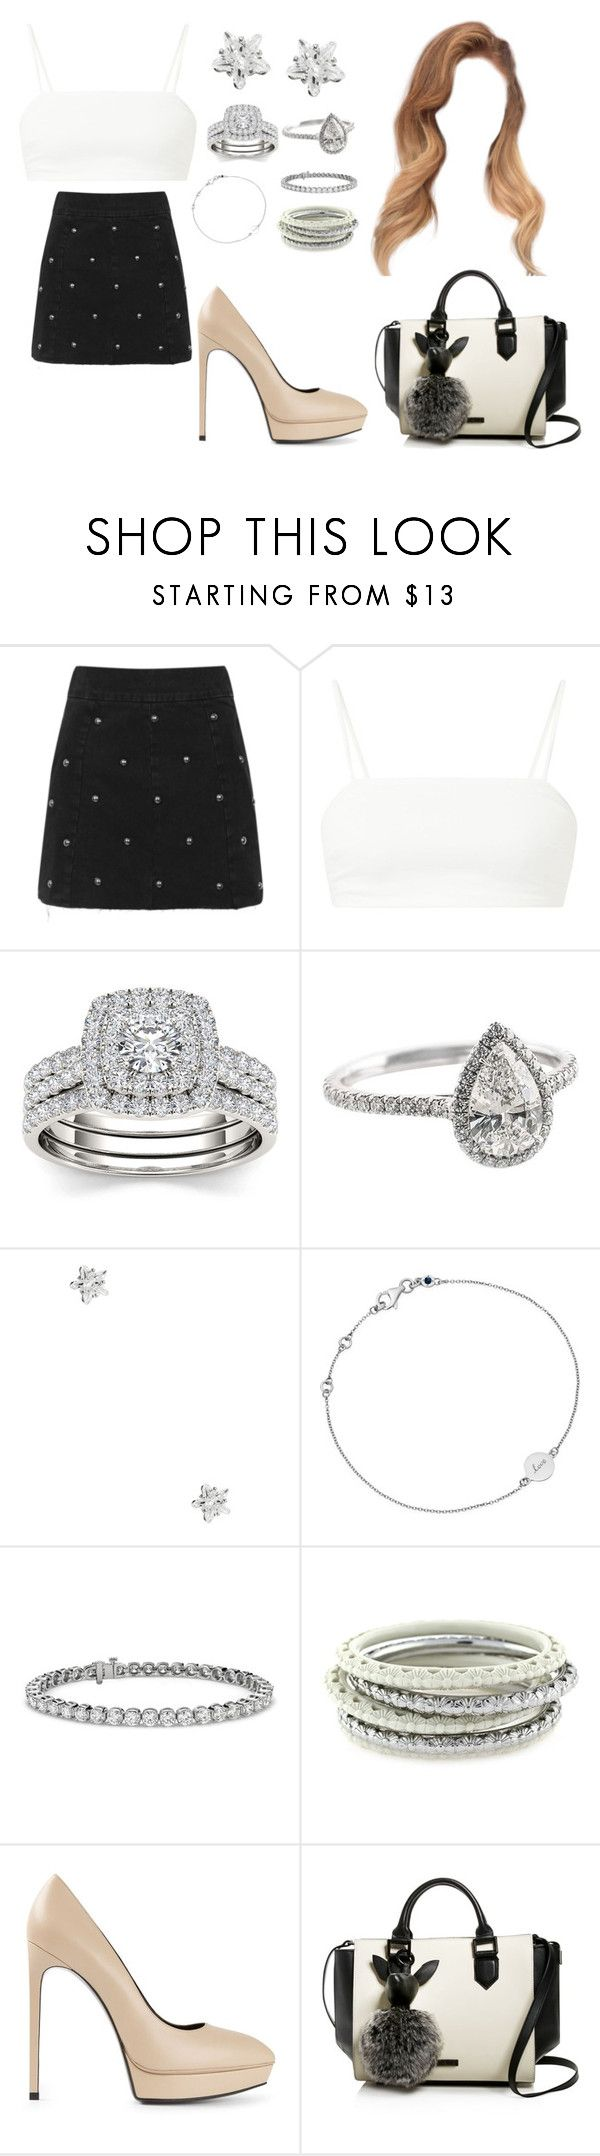 """Feelin' Myself"" by moonlightbabby ❤ liked on Polyvore featuring Topshop, Modern Bride, GUESS, Astley Clarke, Blue Nile, Jessica Simpson, Yves Saint Laurent and Kendall + Kylie"